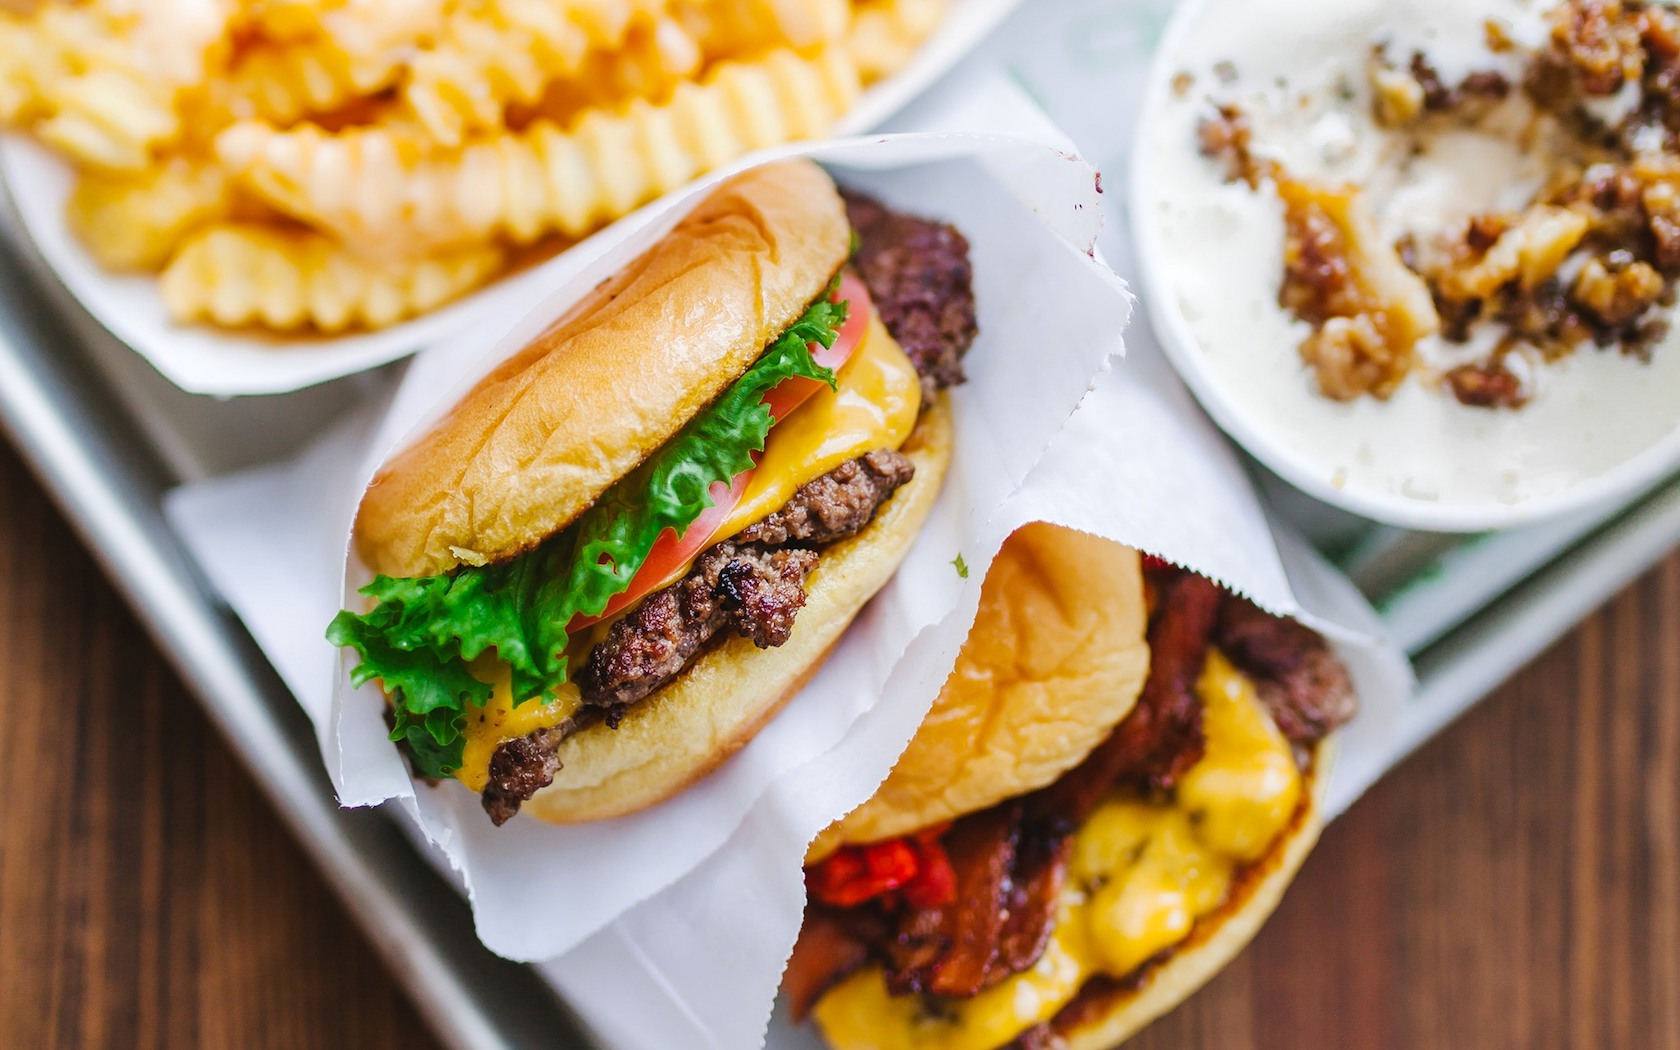 In-N-Out, Shake Shack, Five Guys: The Best American Burger